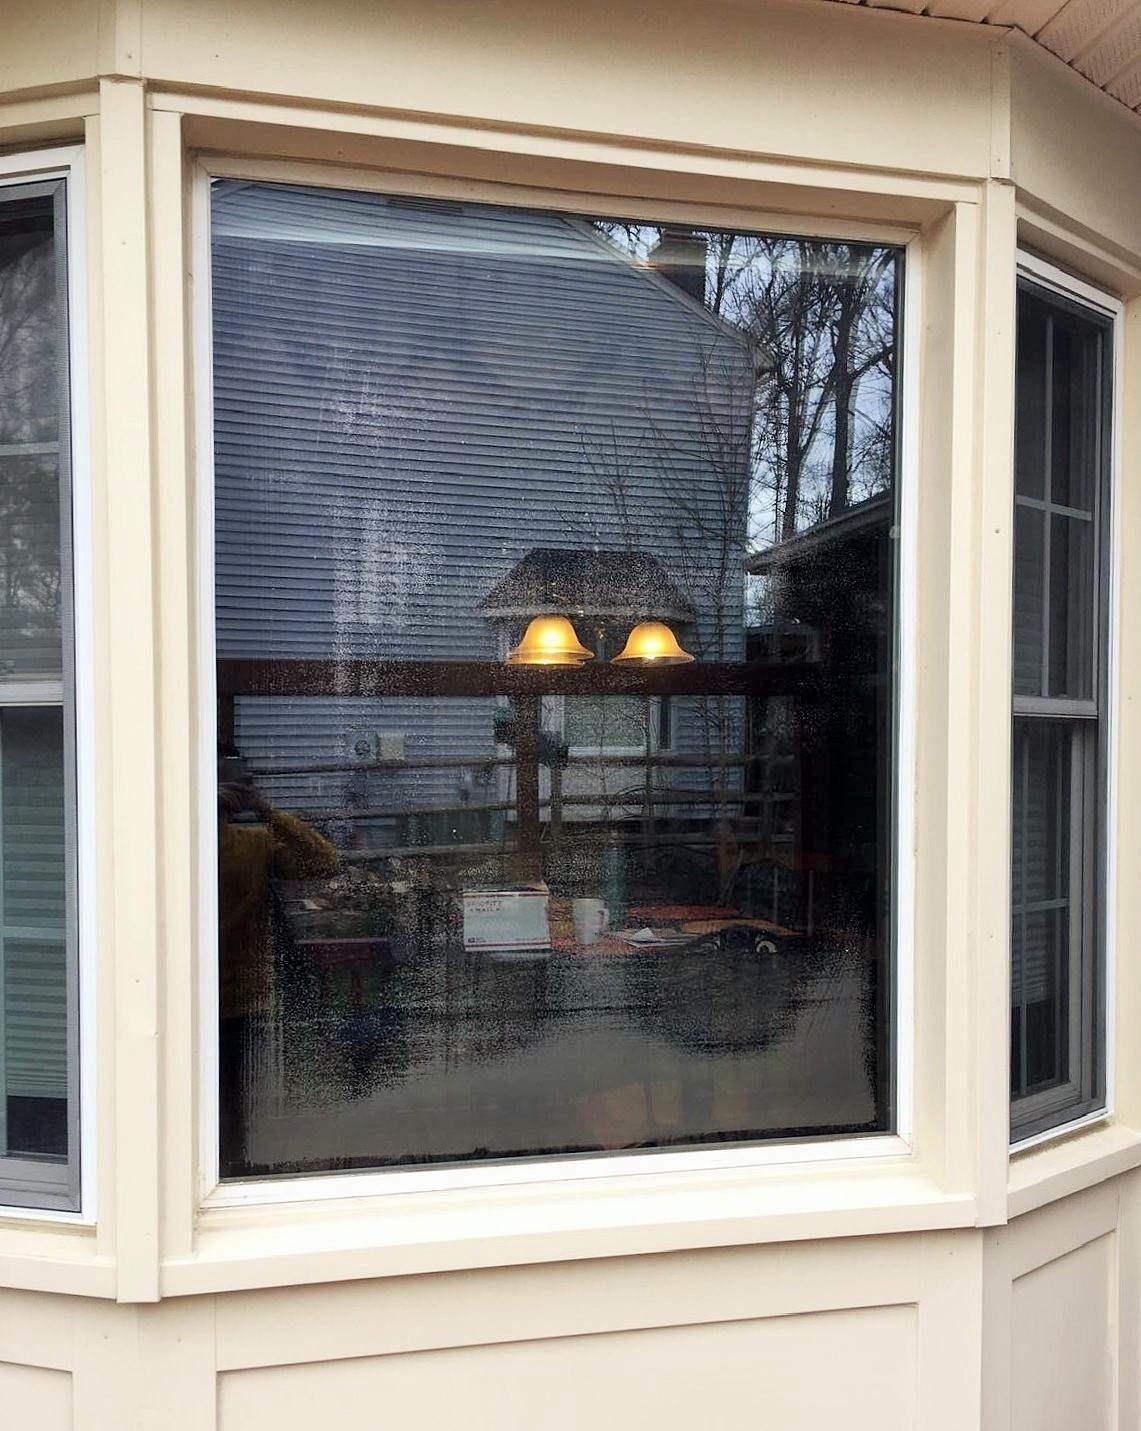 Virginia Glass Windows Best For Commercial And